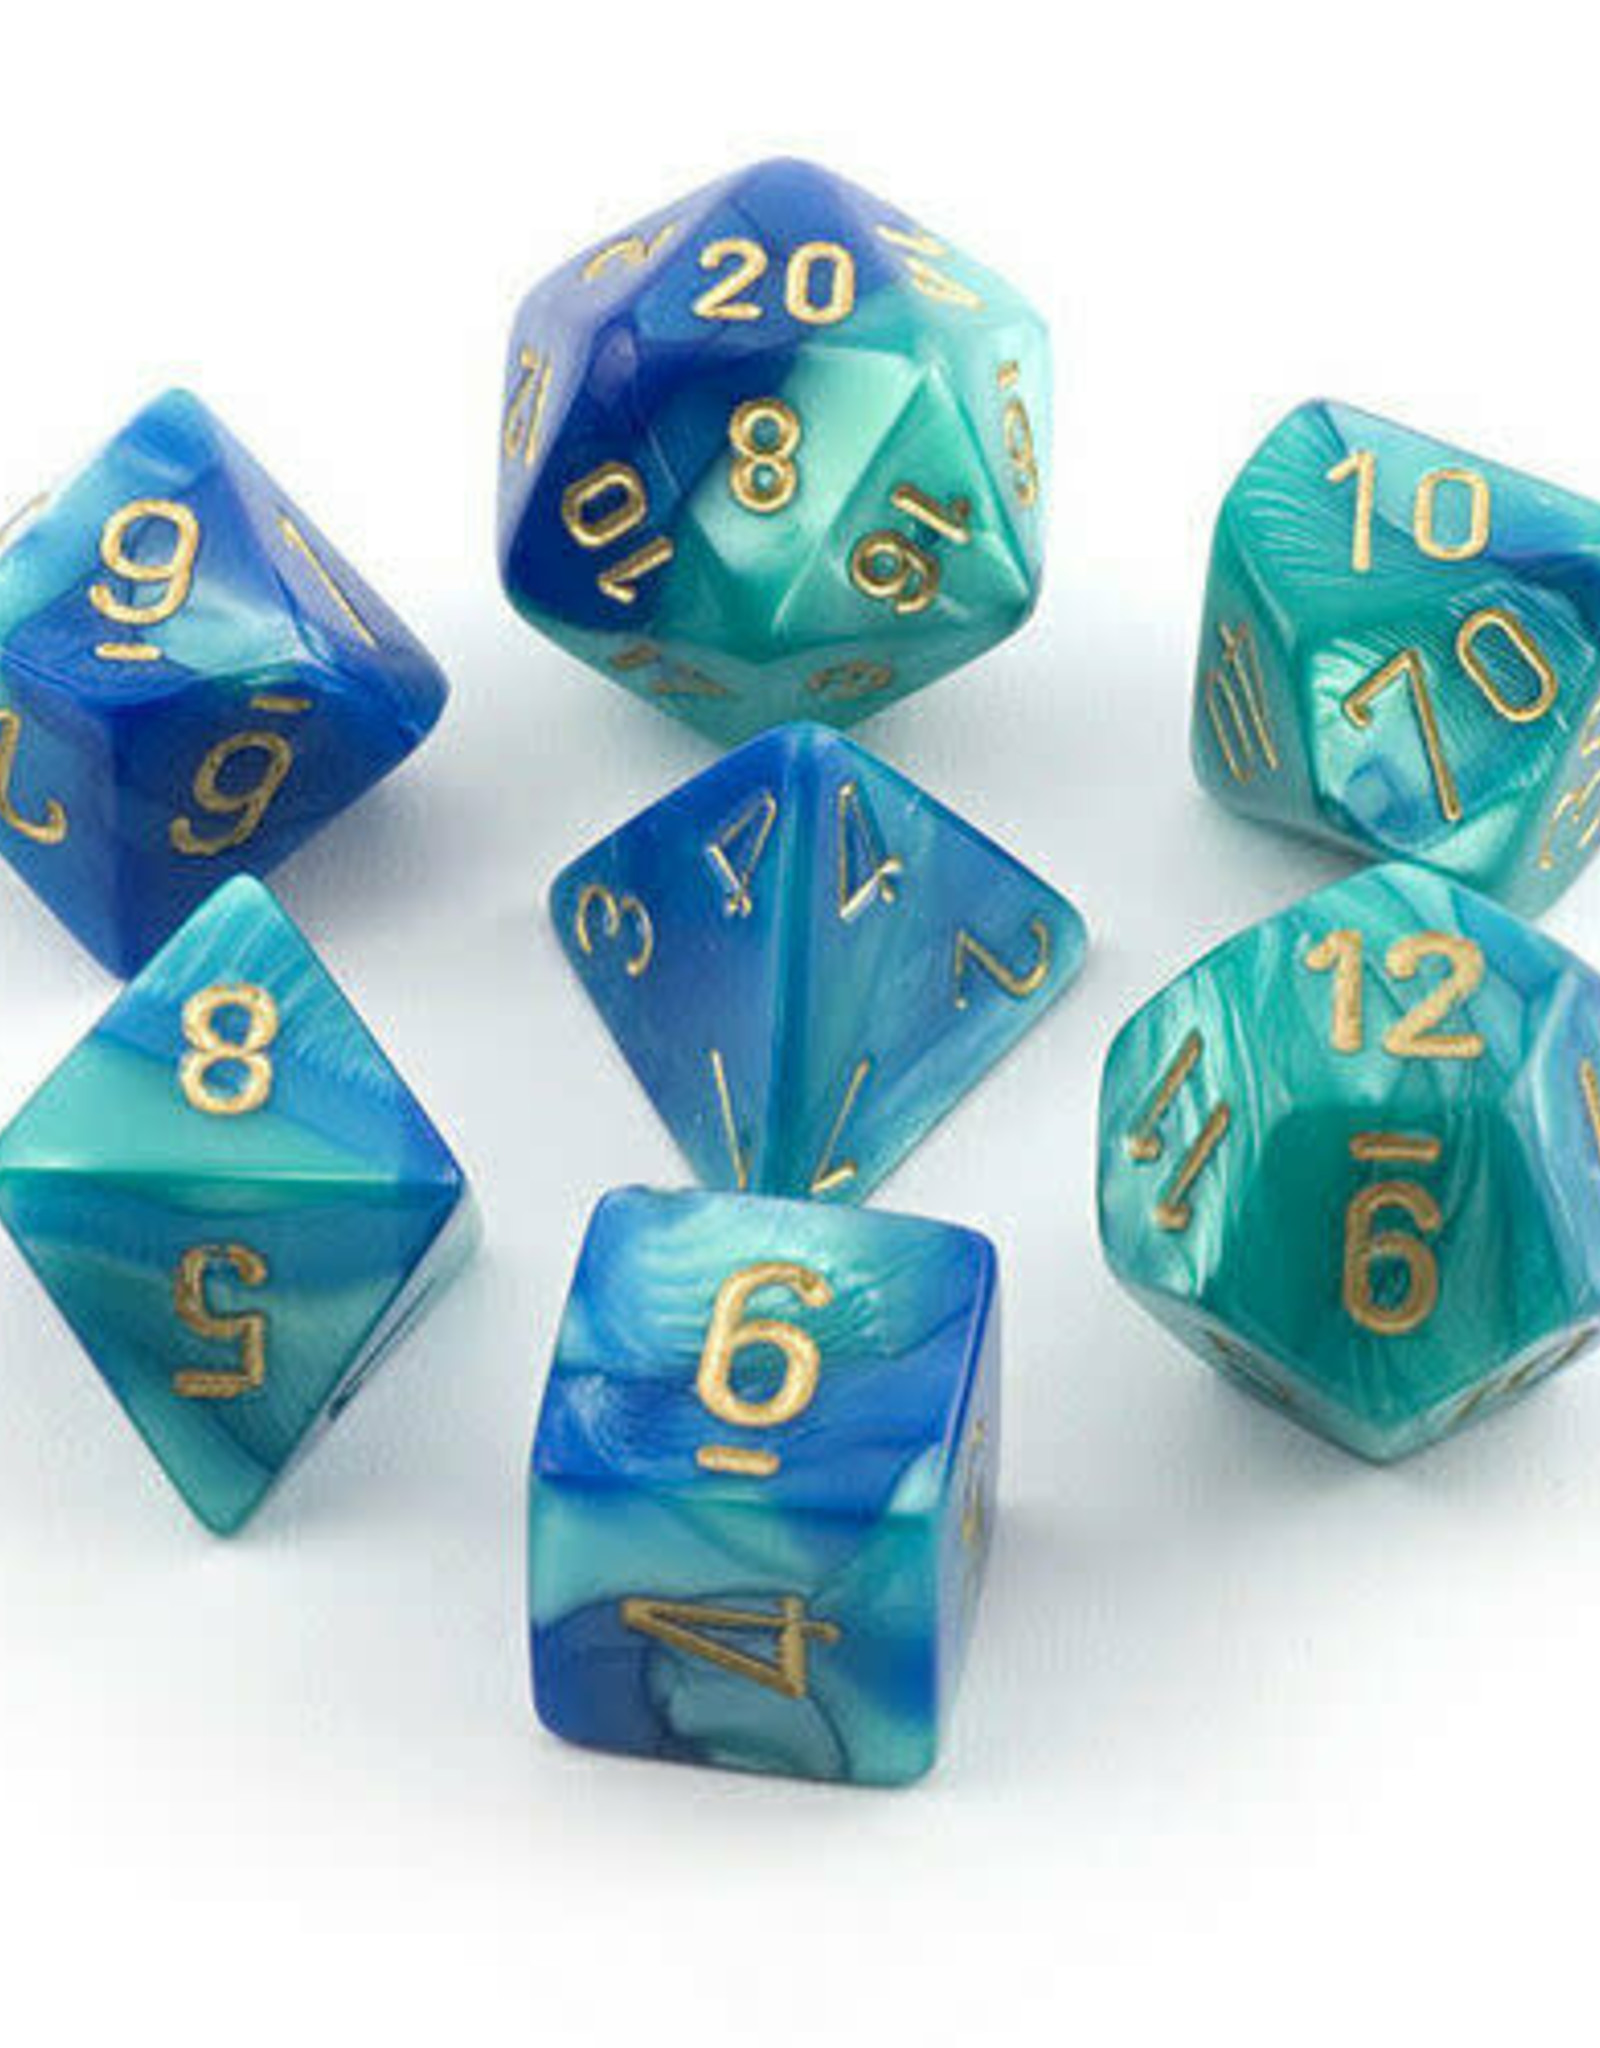 Chessex Gemini Poly 7 set: Blue & Teal w/ Gold